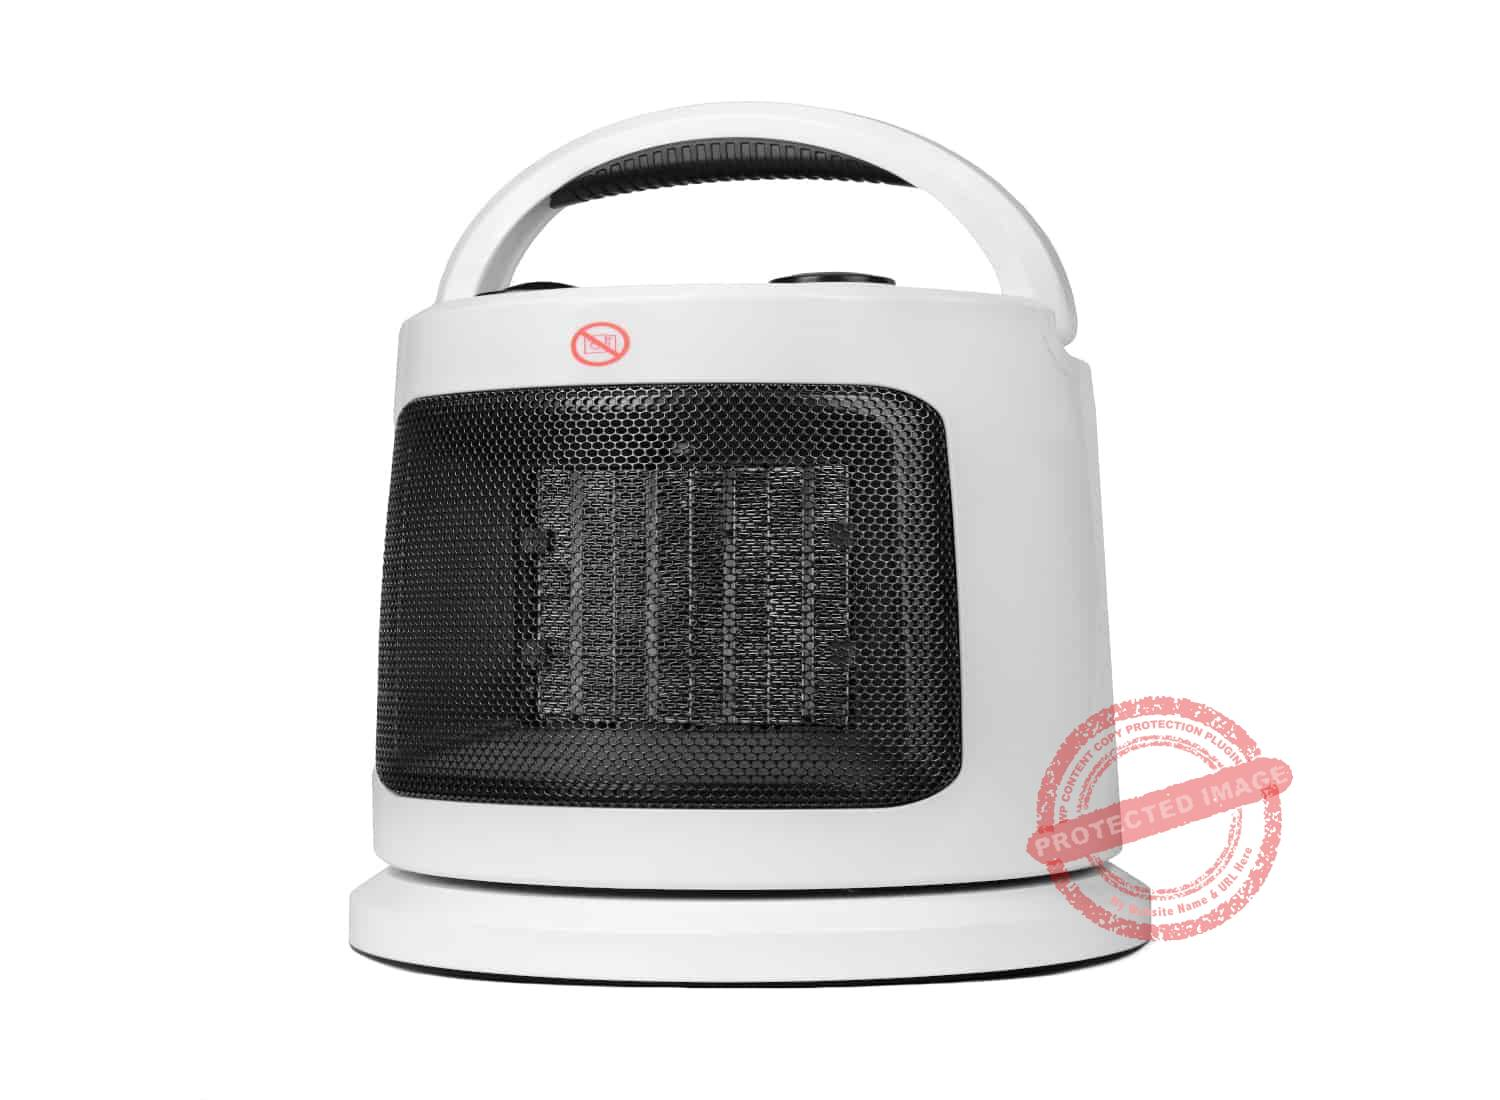 Best Small Space Heater For Bathroom 2021 Top Reviews Smallbusinessify Com